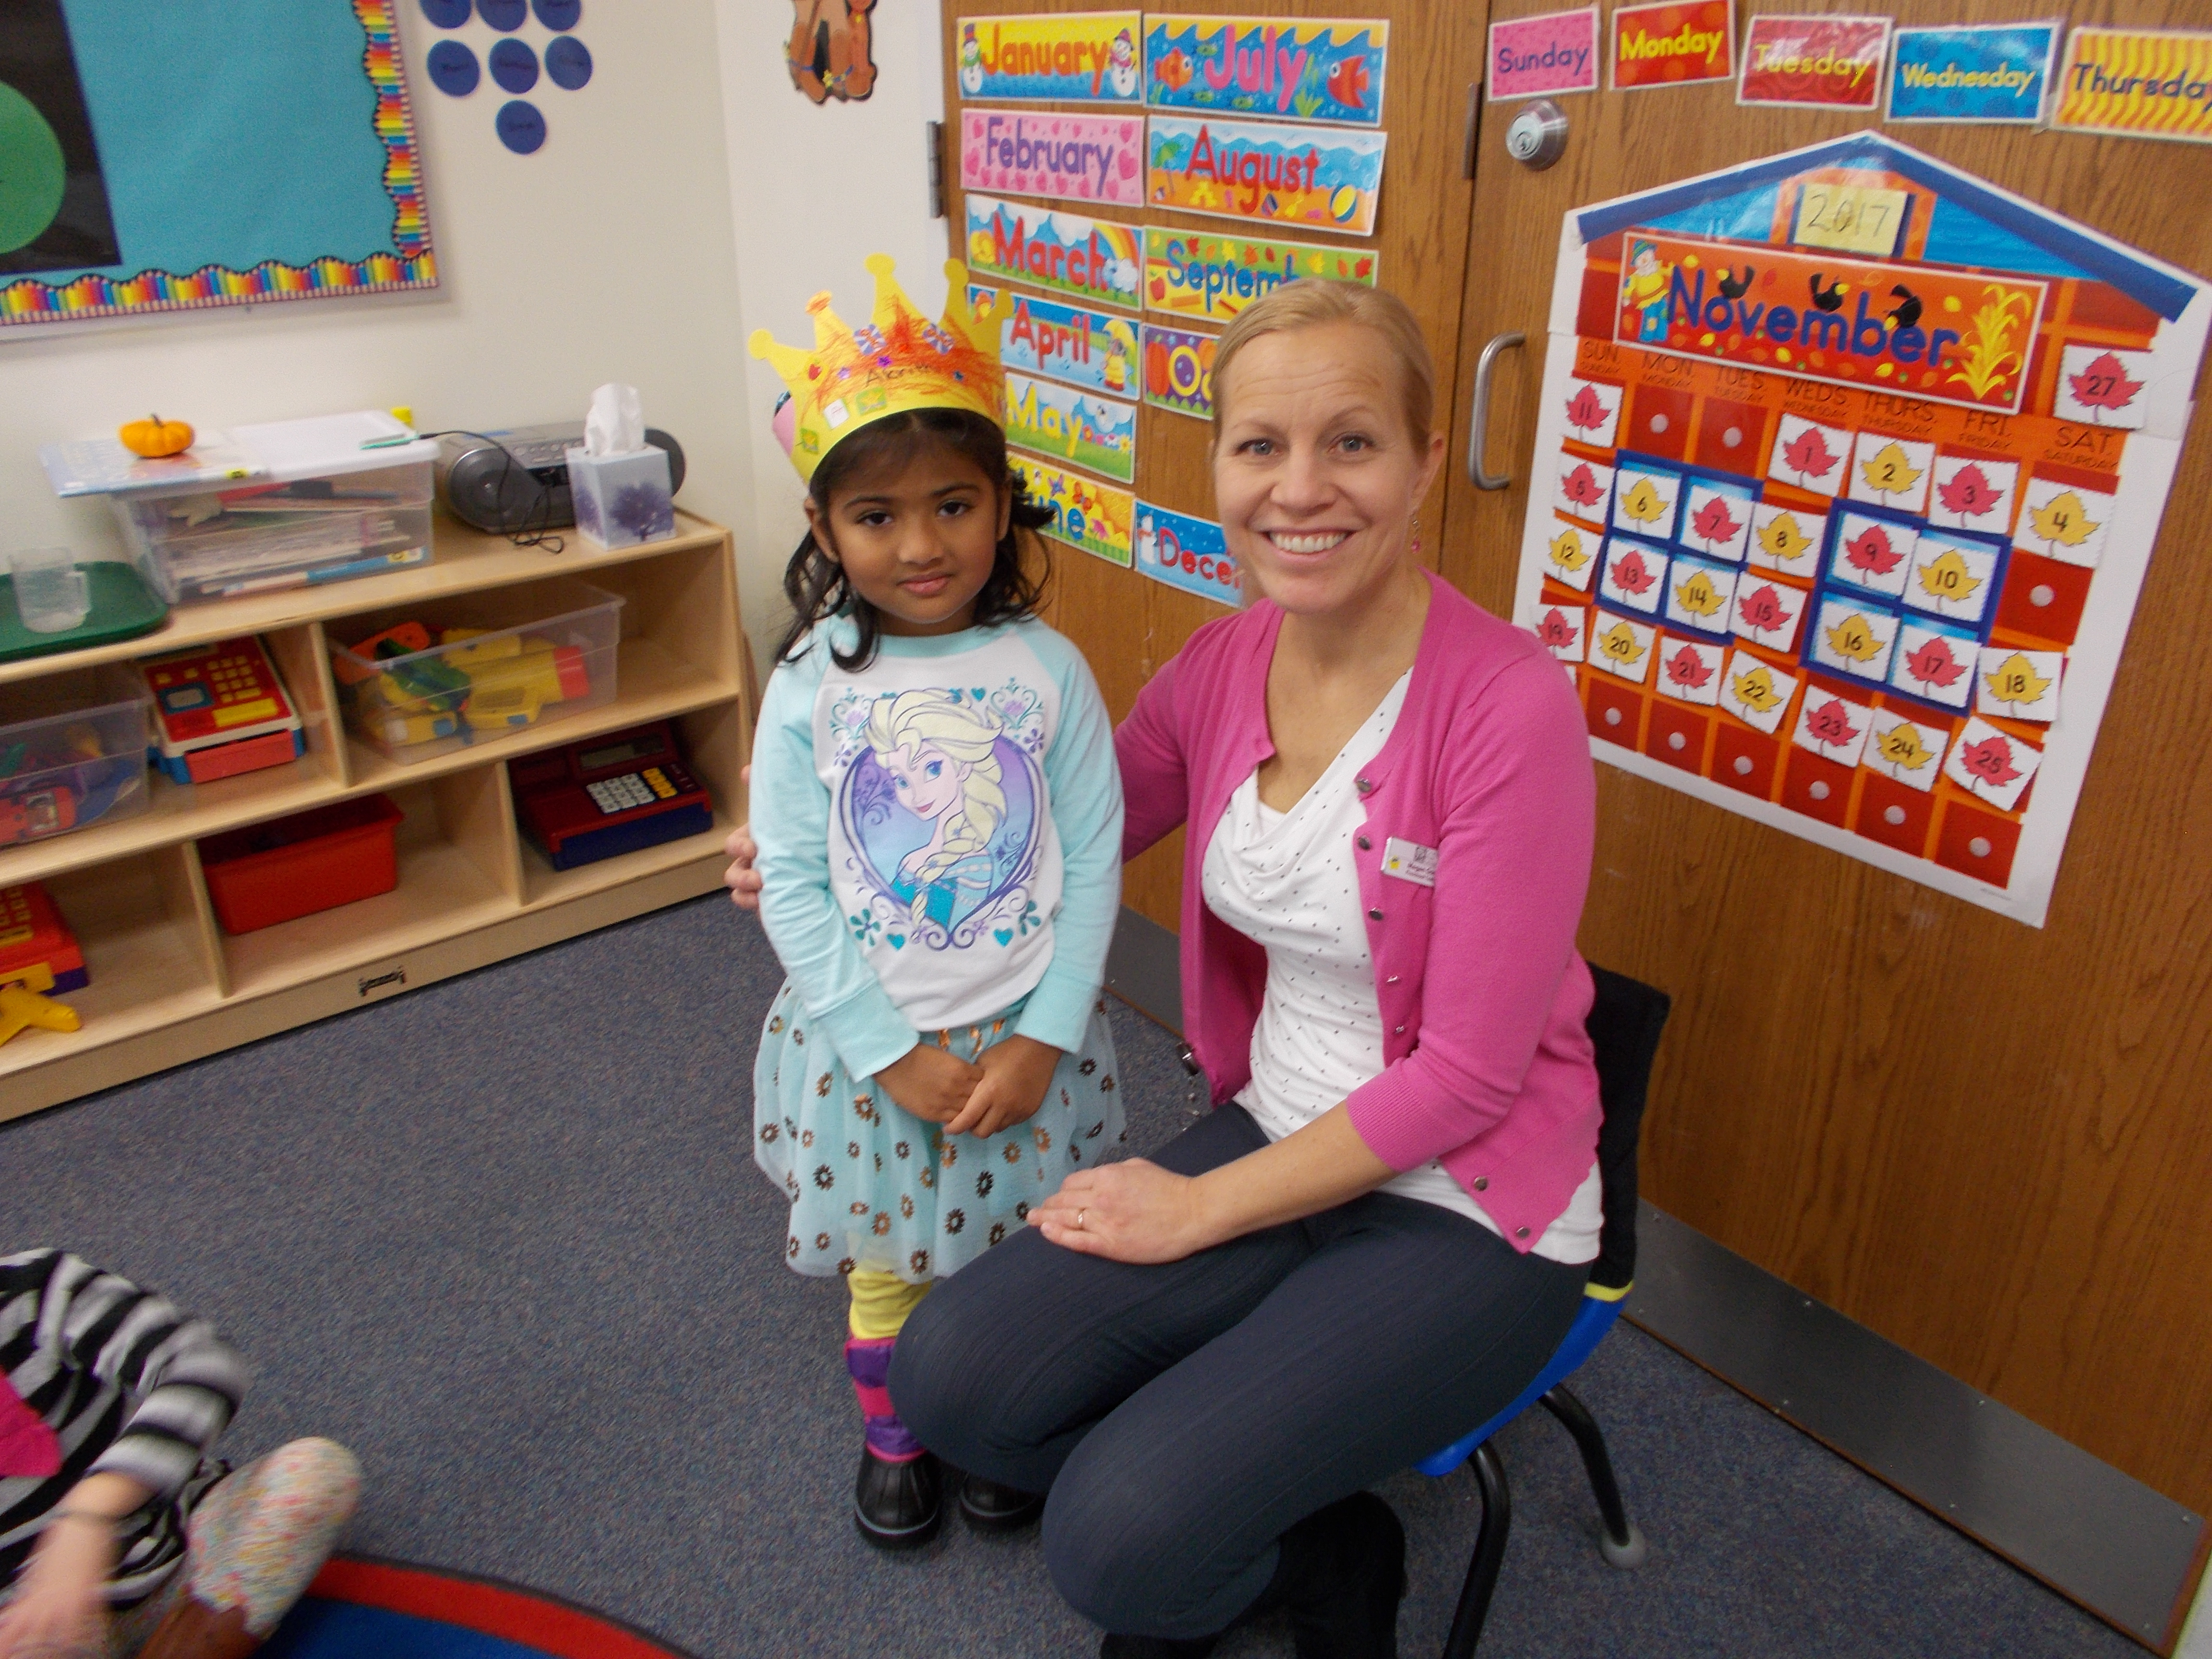 Growing Tree Preschool student with Ms. Megan.